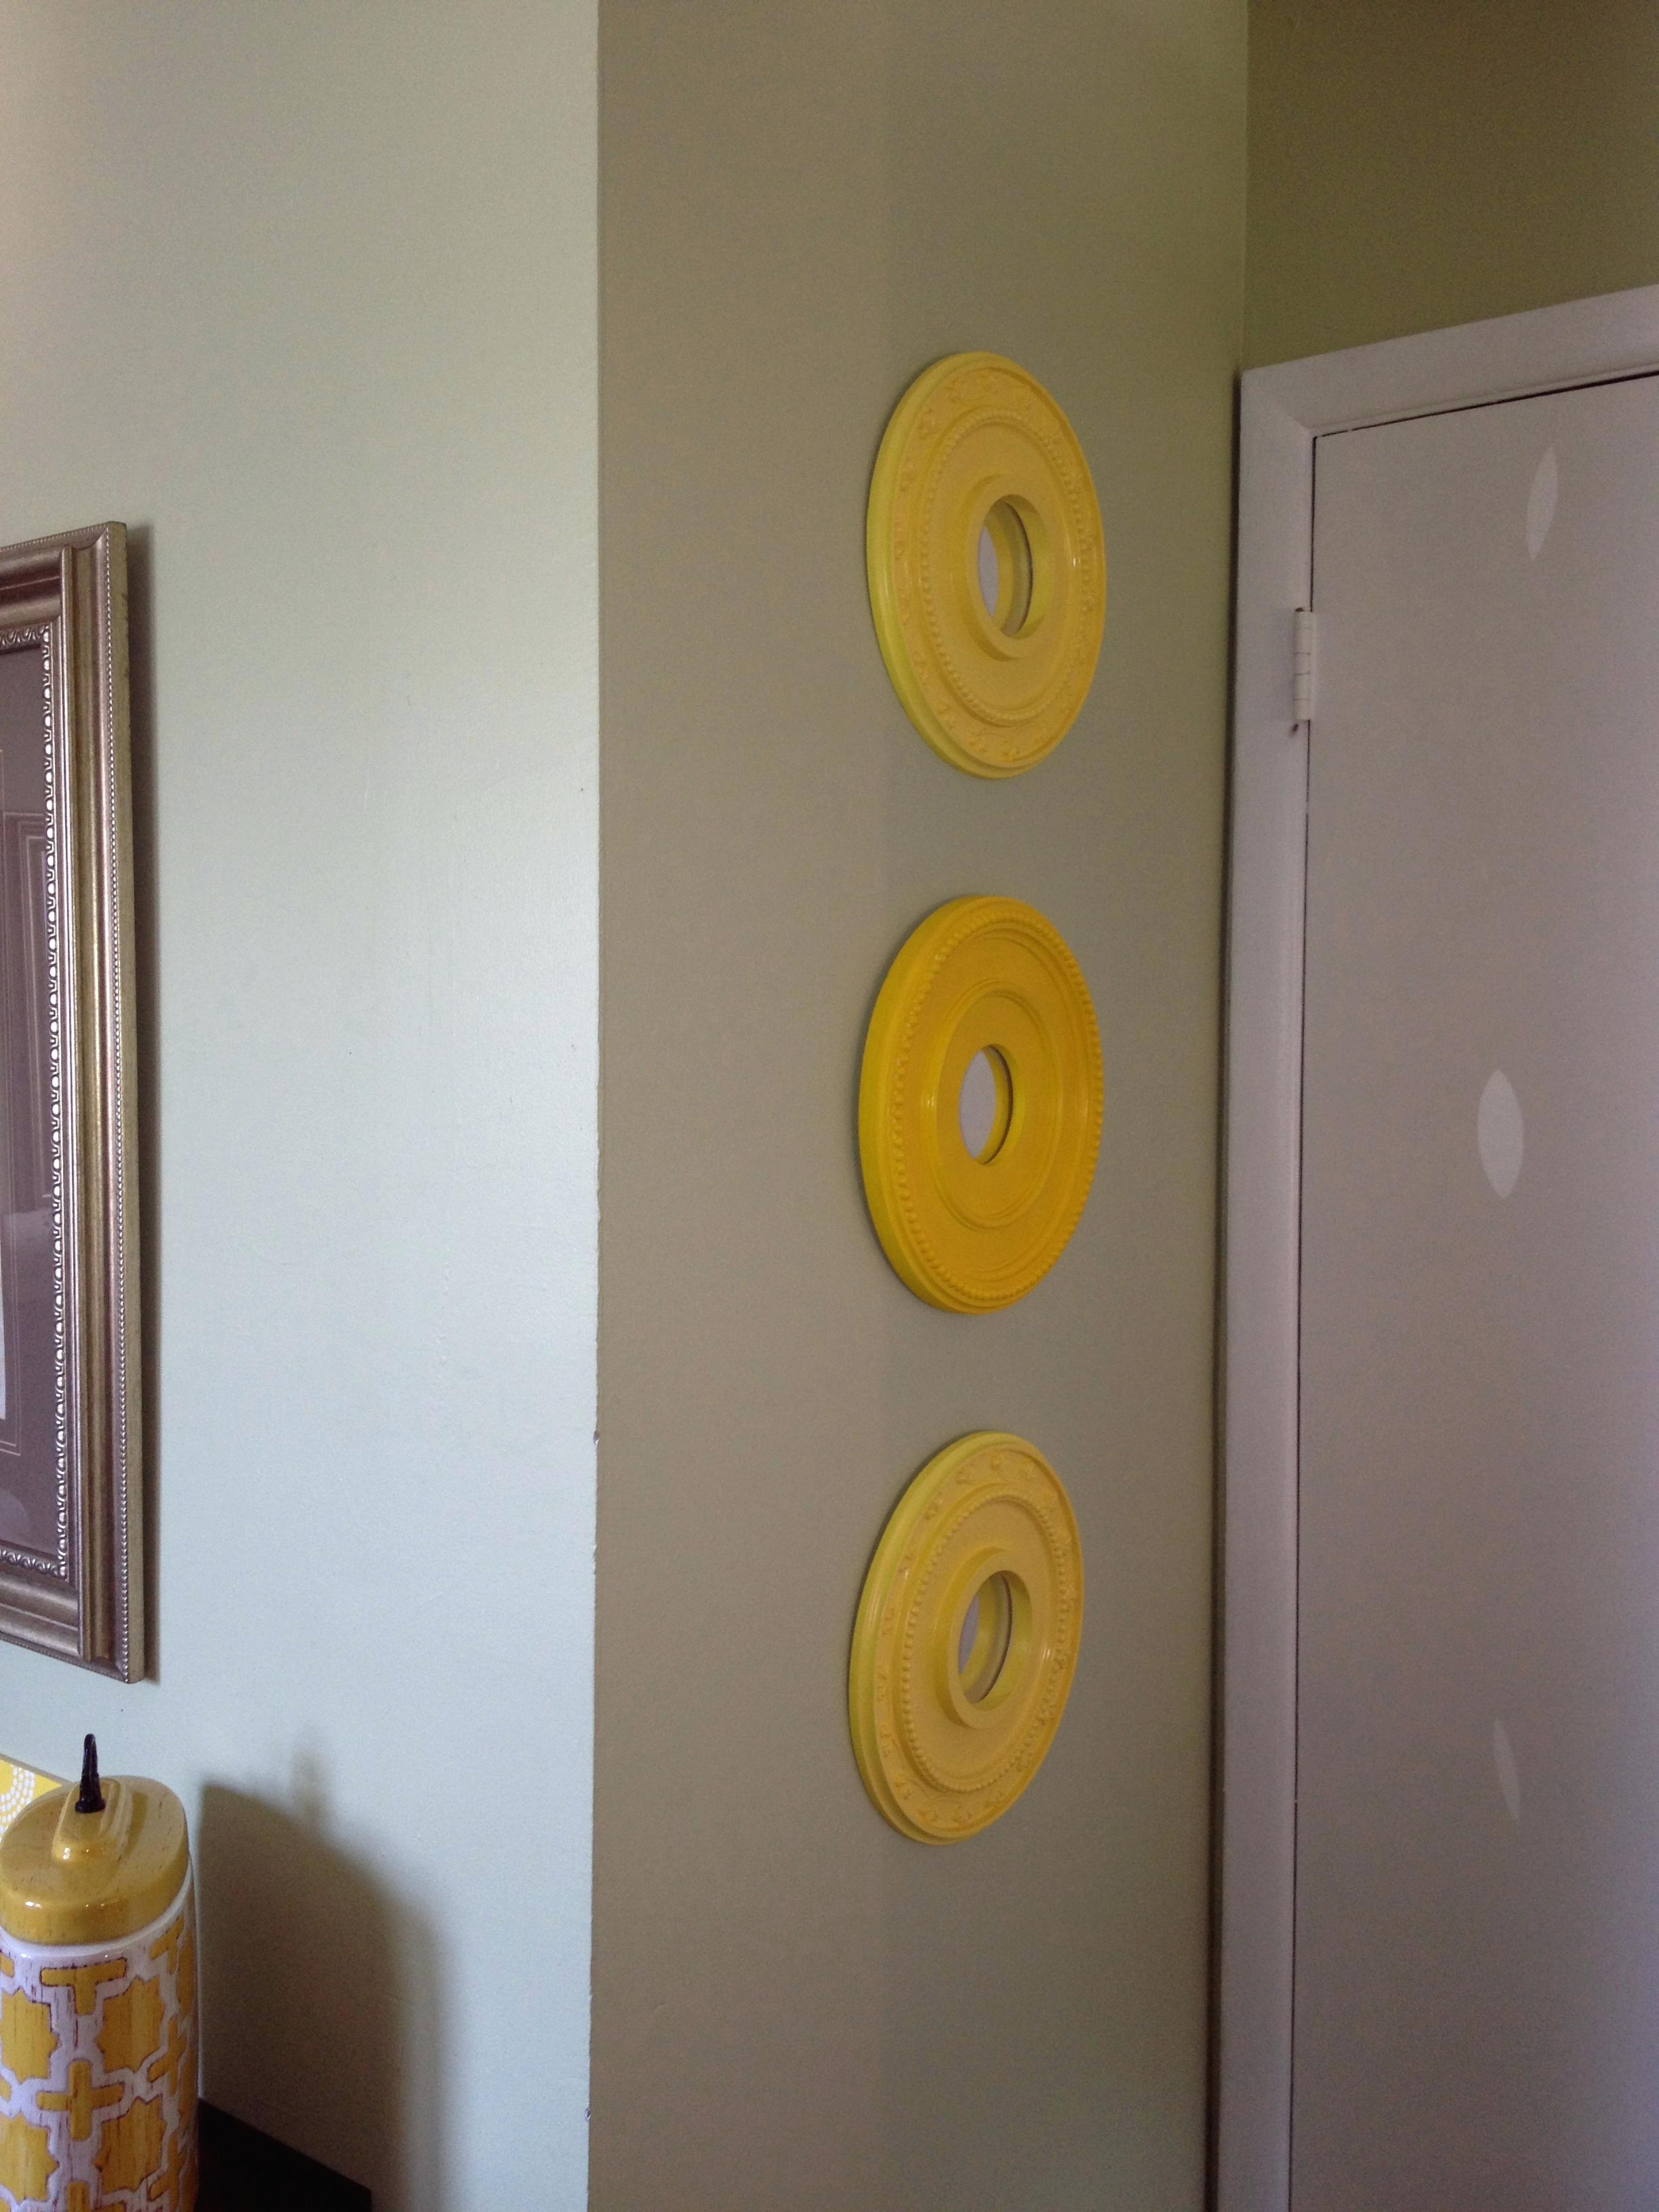 Wall Ideas : Ceiling Medallion Wall Art Ceiling Medallions Used As Intended For Medallion Tiles Wall Art (Image 10 of 20)